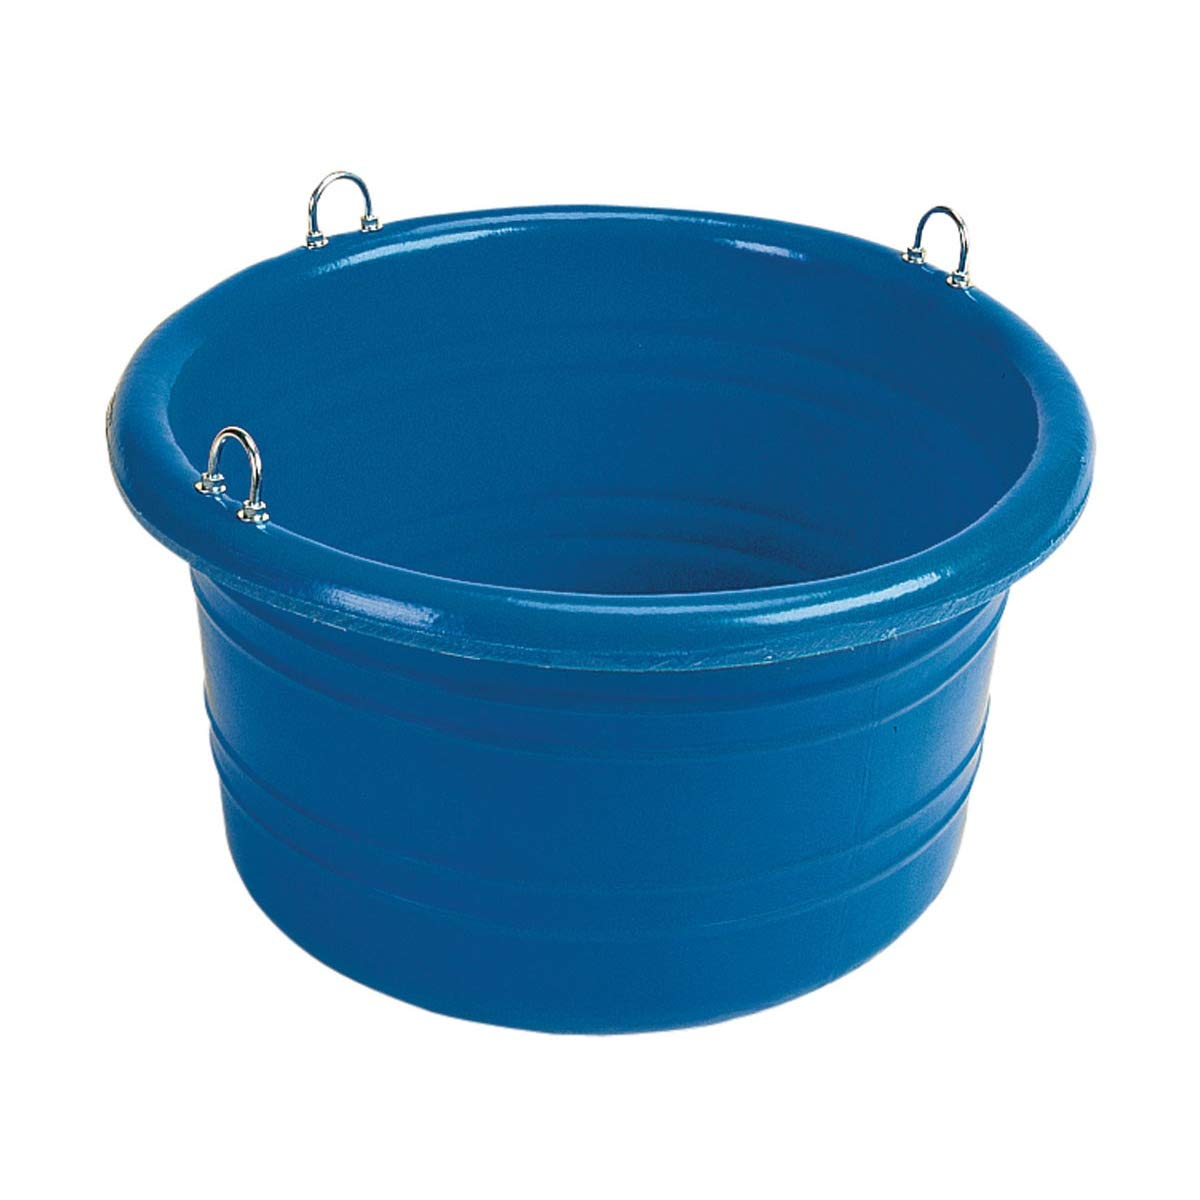 bluee One Size bluee One Size Stubbs Large Feed Tub (One Size) (bluee)